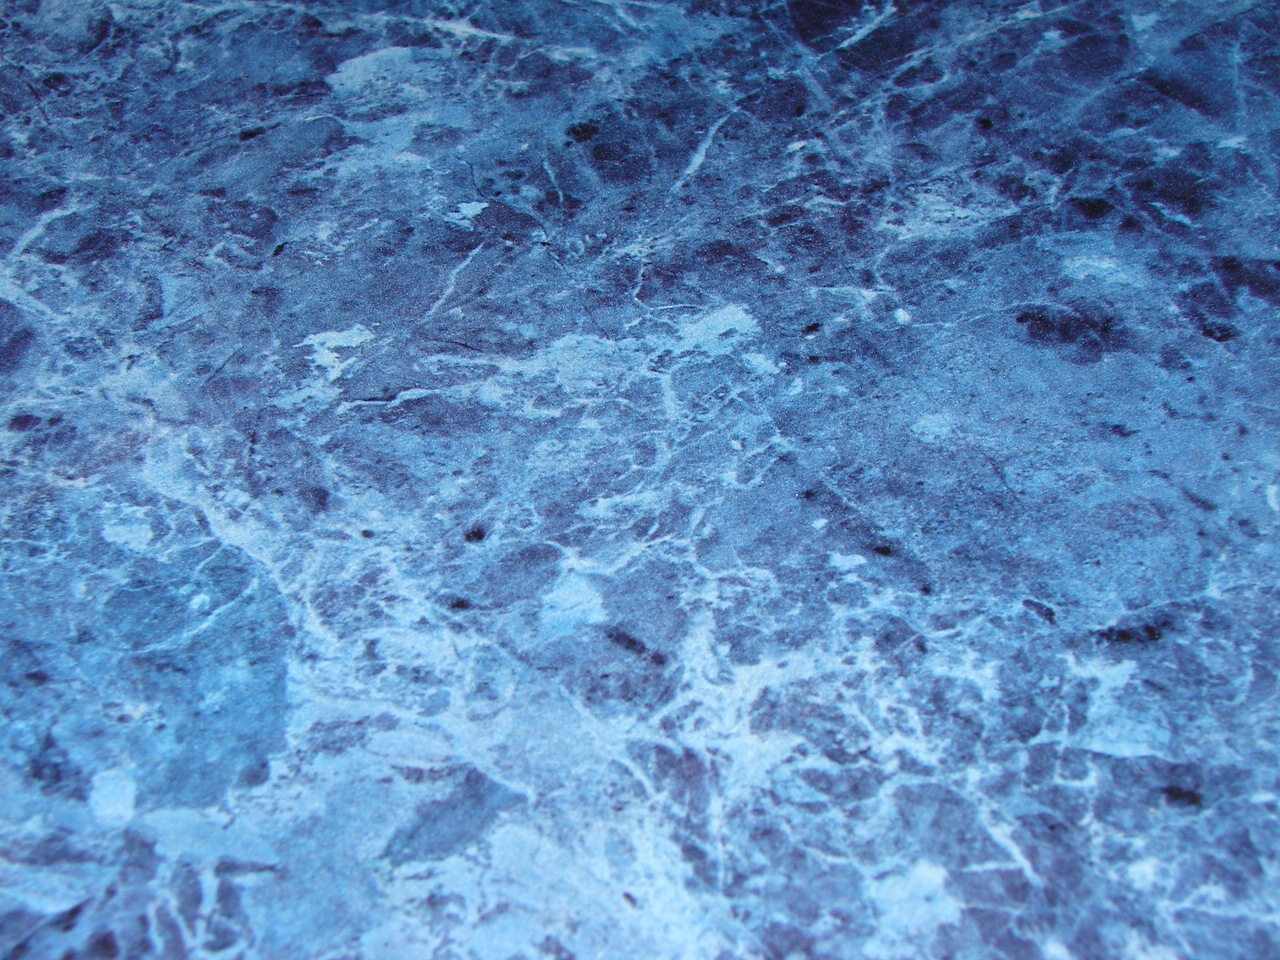 Dark Blue Marble : Azure blue marble texture by fantasystock on deviantart